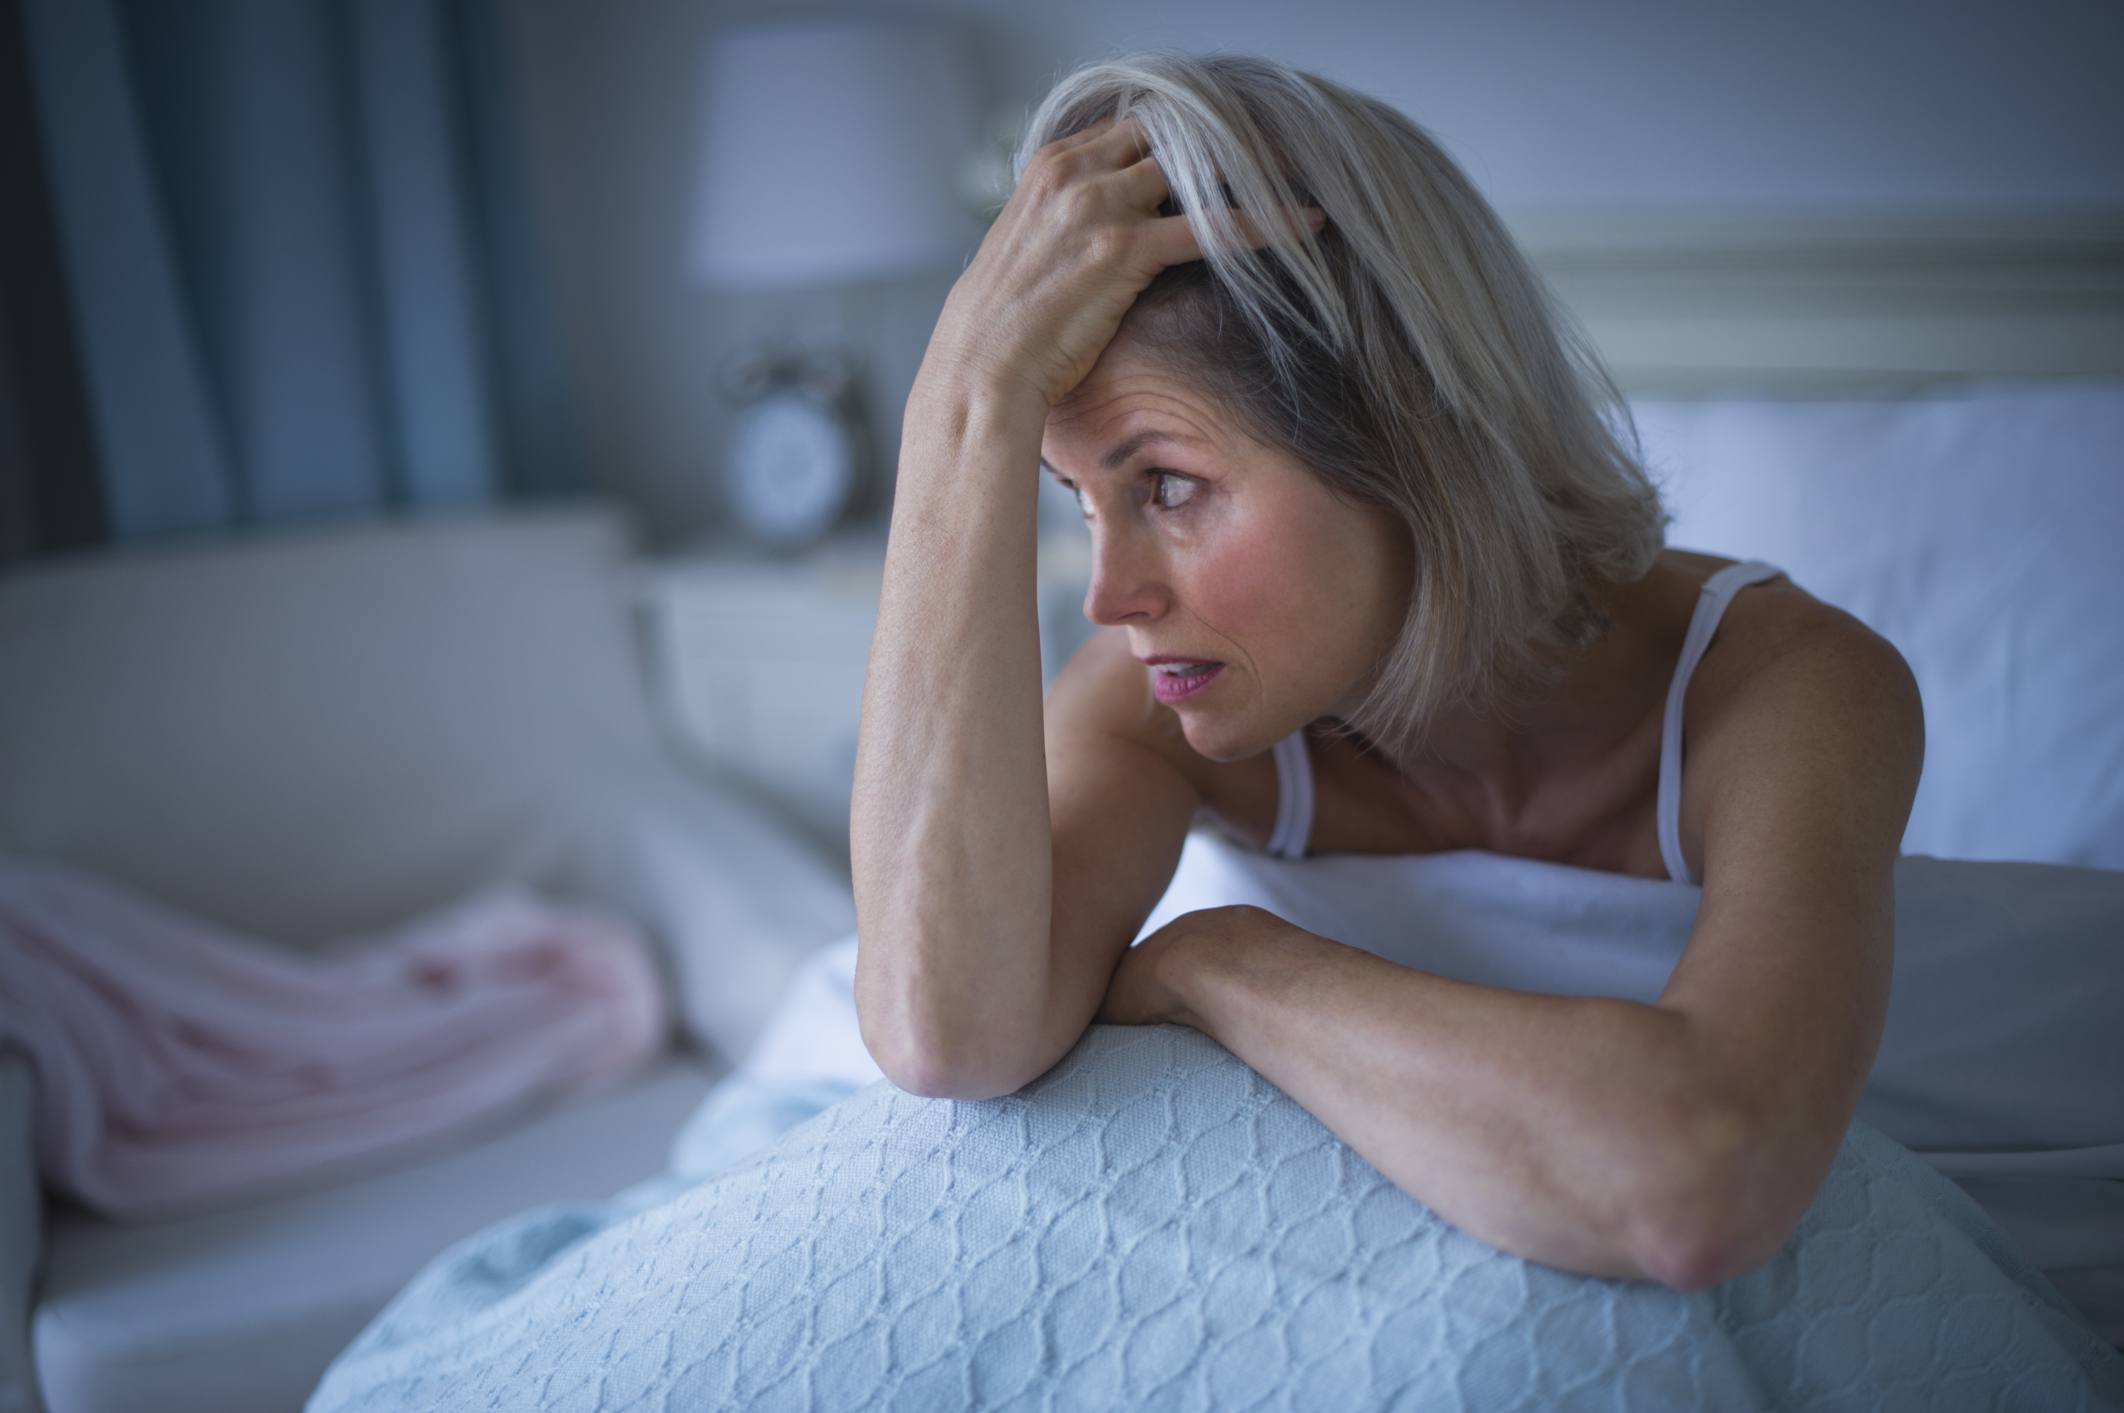 What Causes Insomnia For People With Cancer